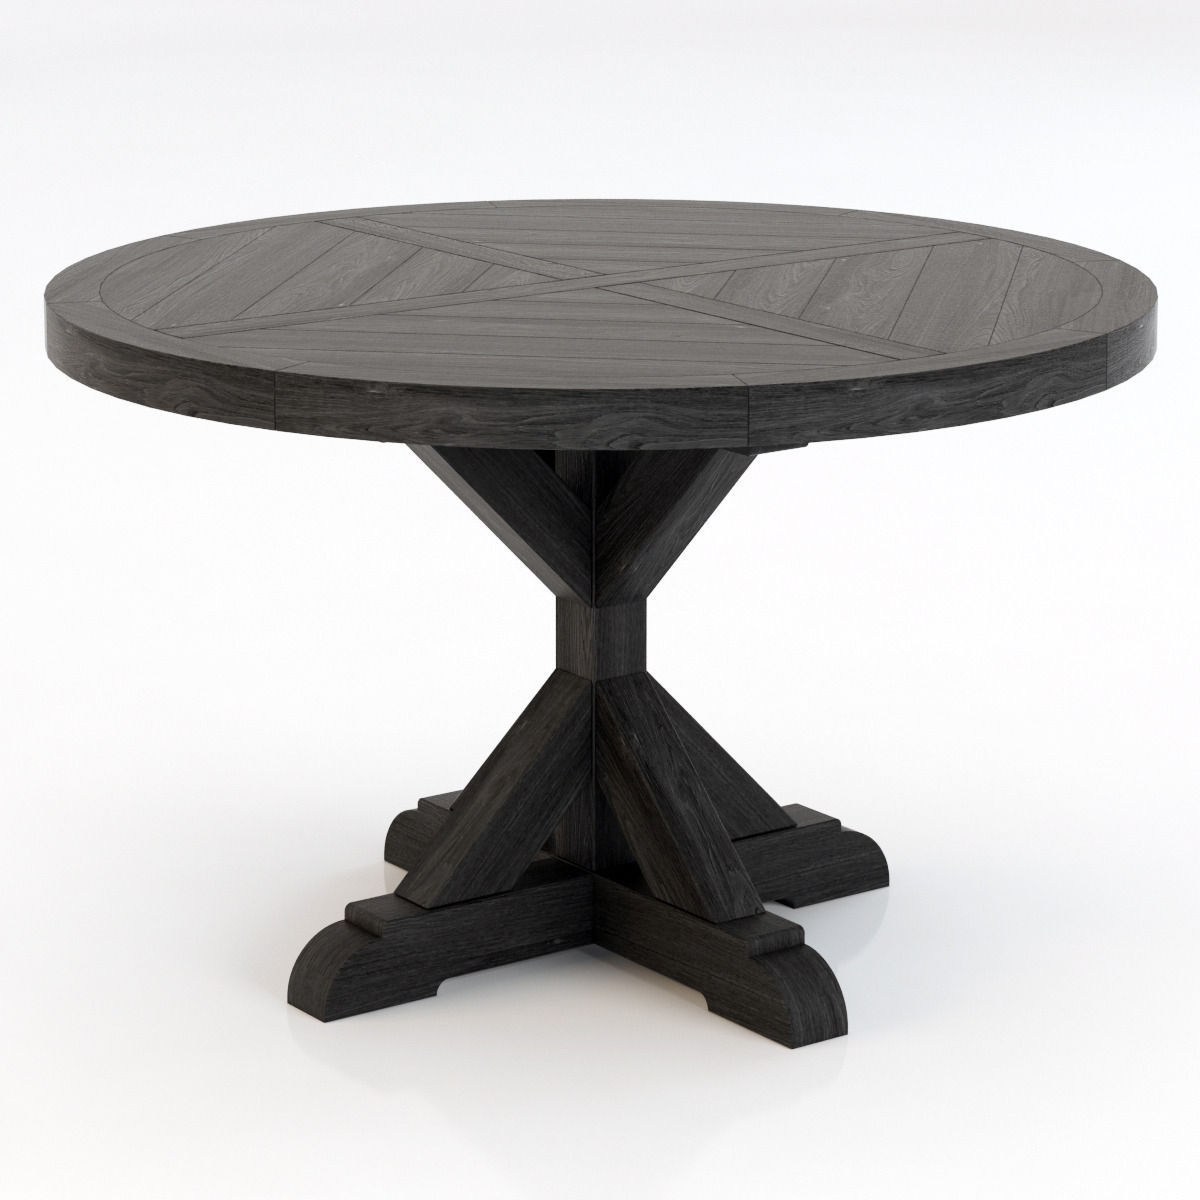 Dining table x base alasweaspire for New model wooden dining table